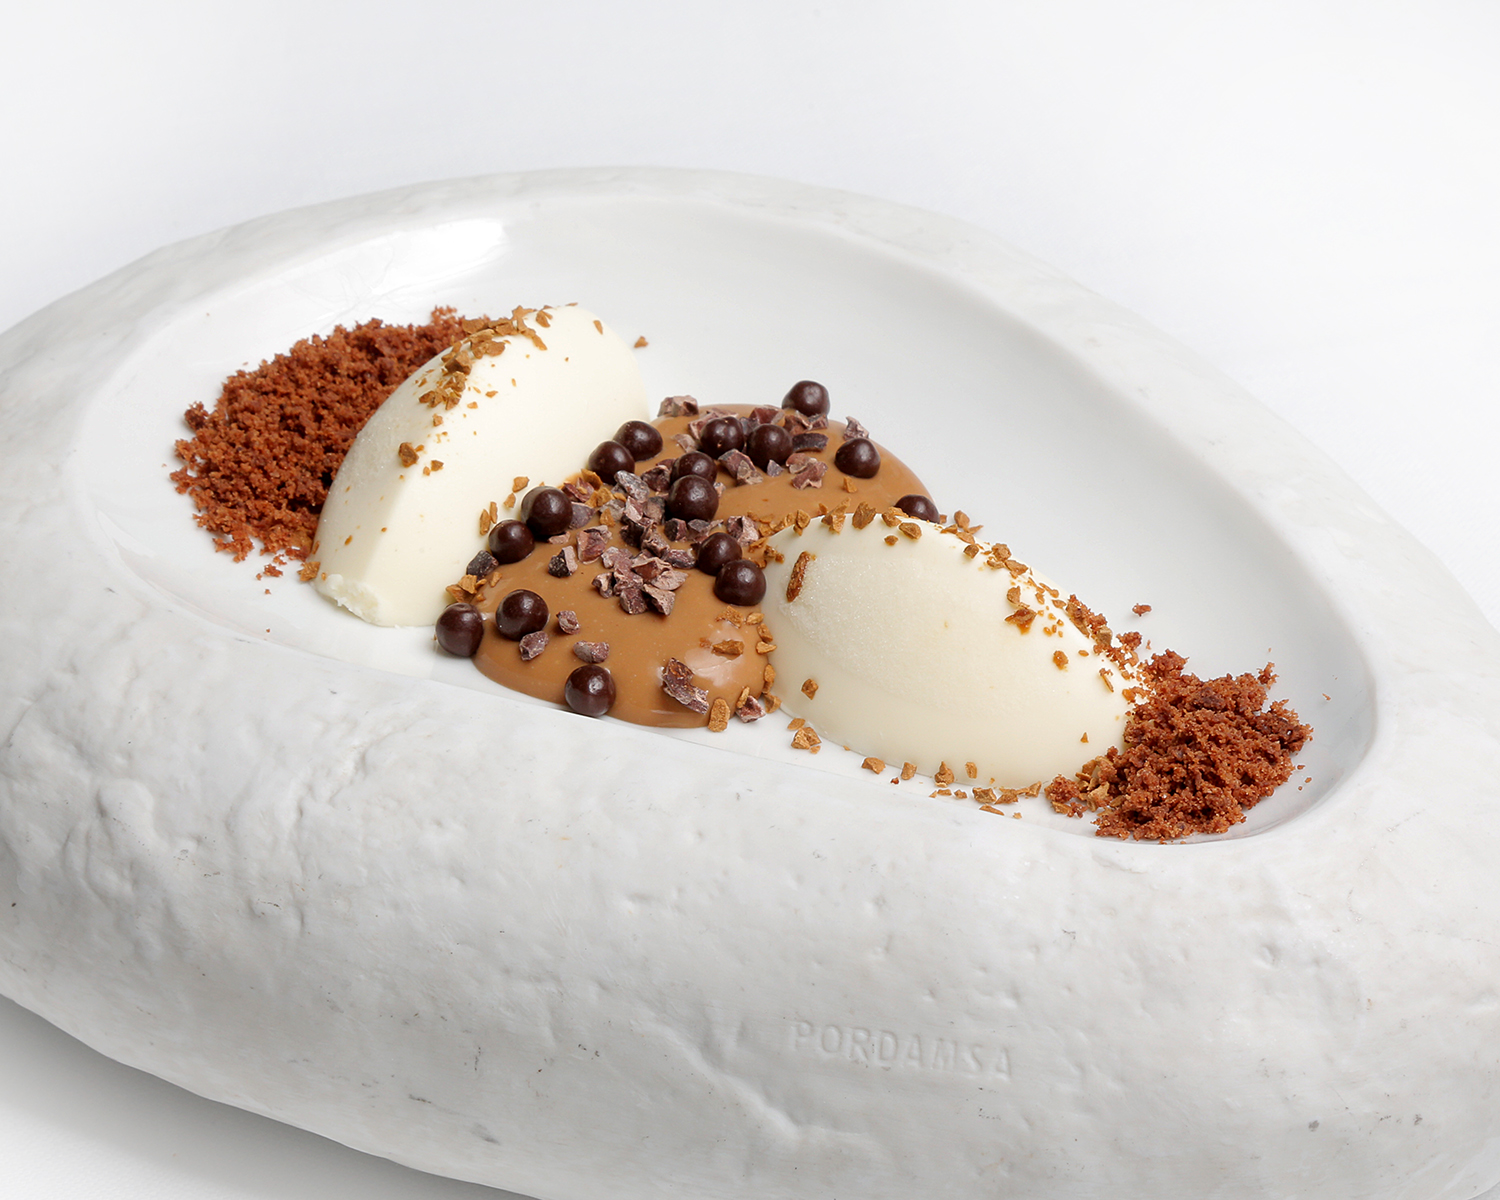 03-RIVER-HALL_mascarpone-con-crema-de-cafe